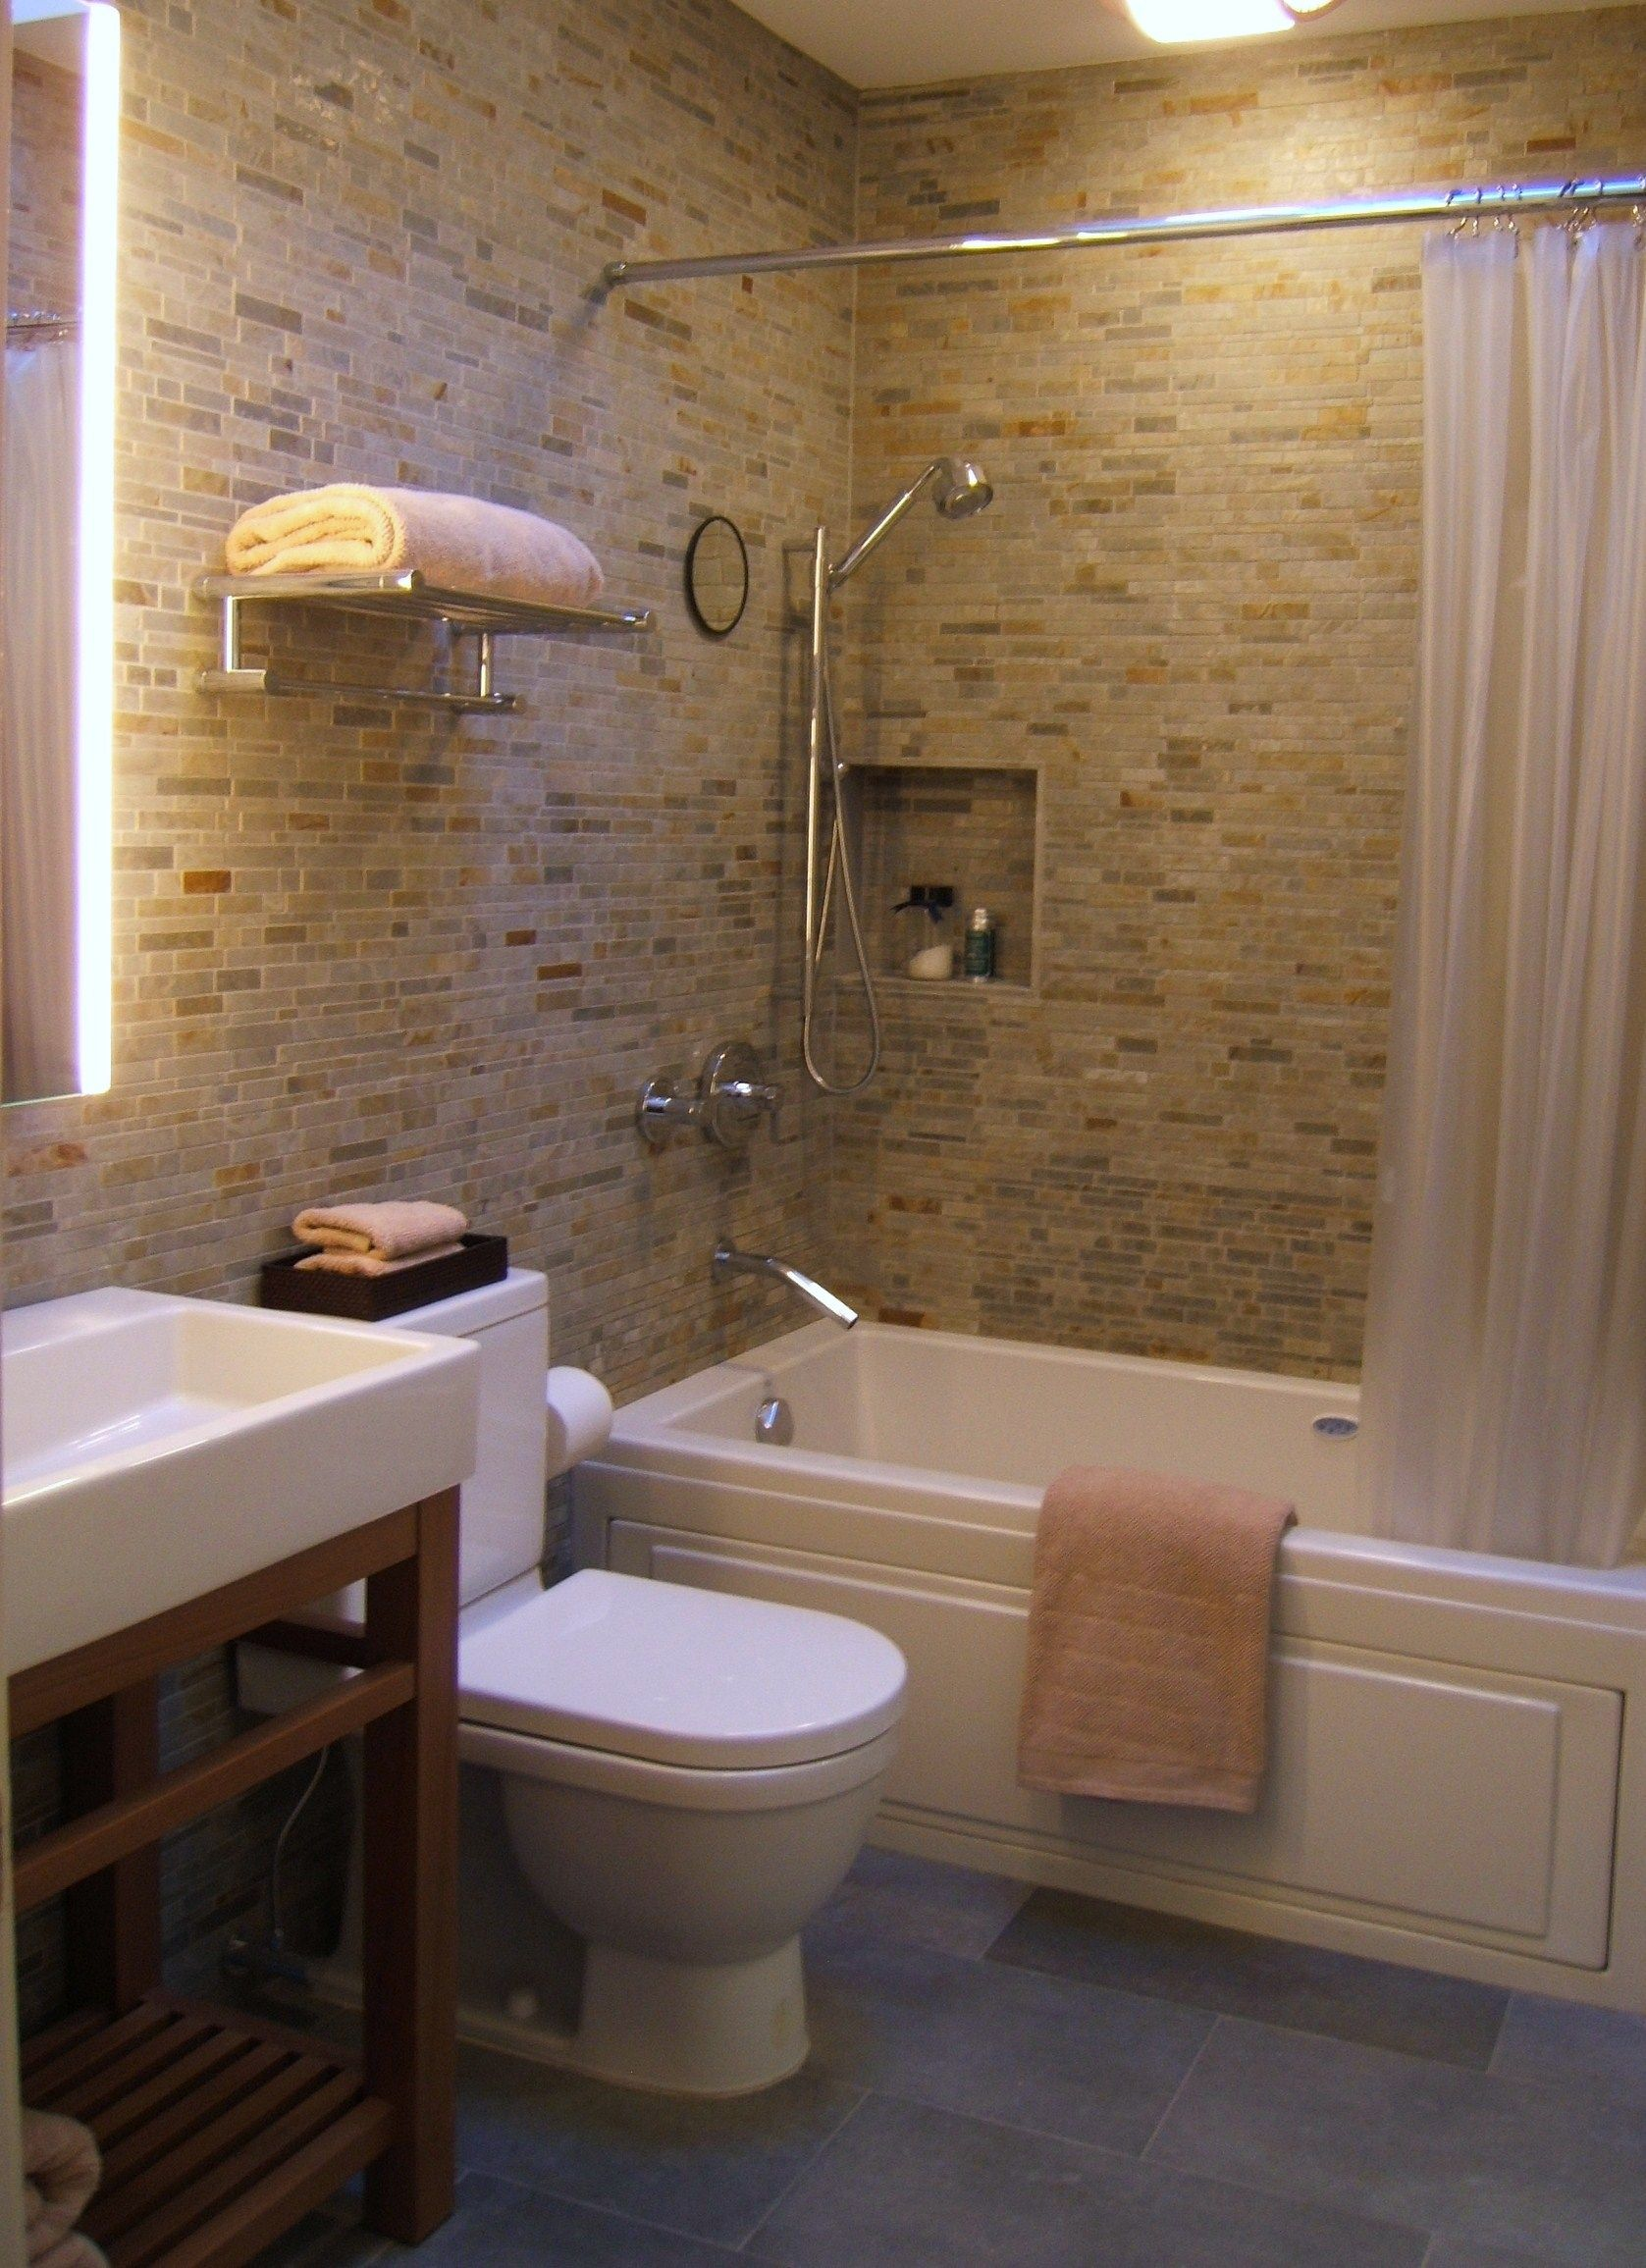 Small bathroom designs south africa small bath for Small bathroom ideas with tub